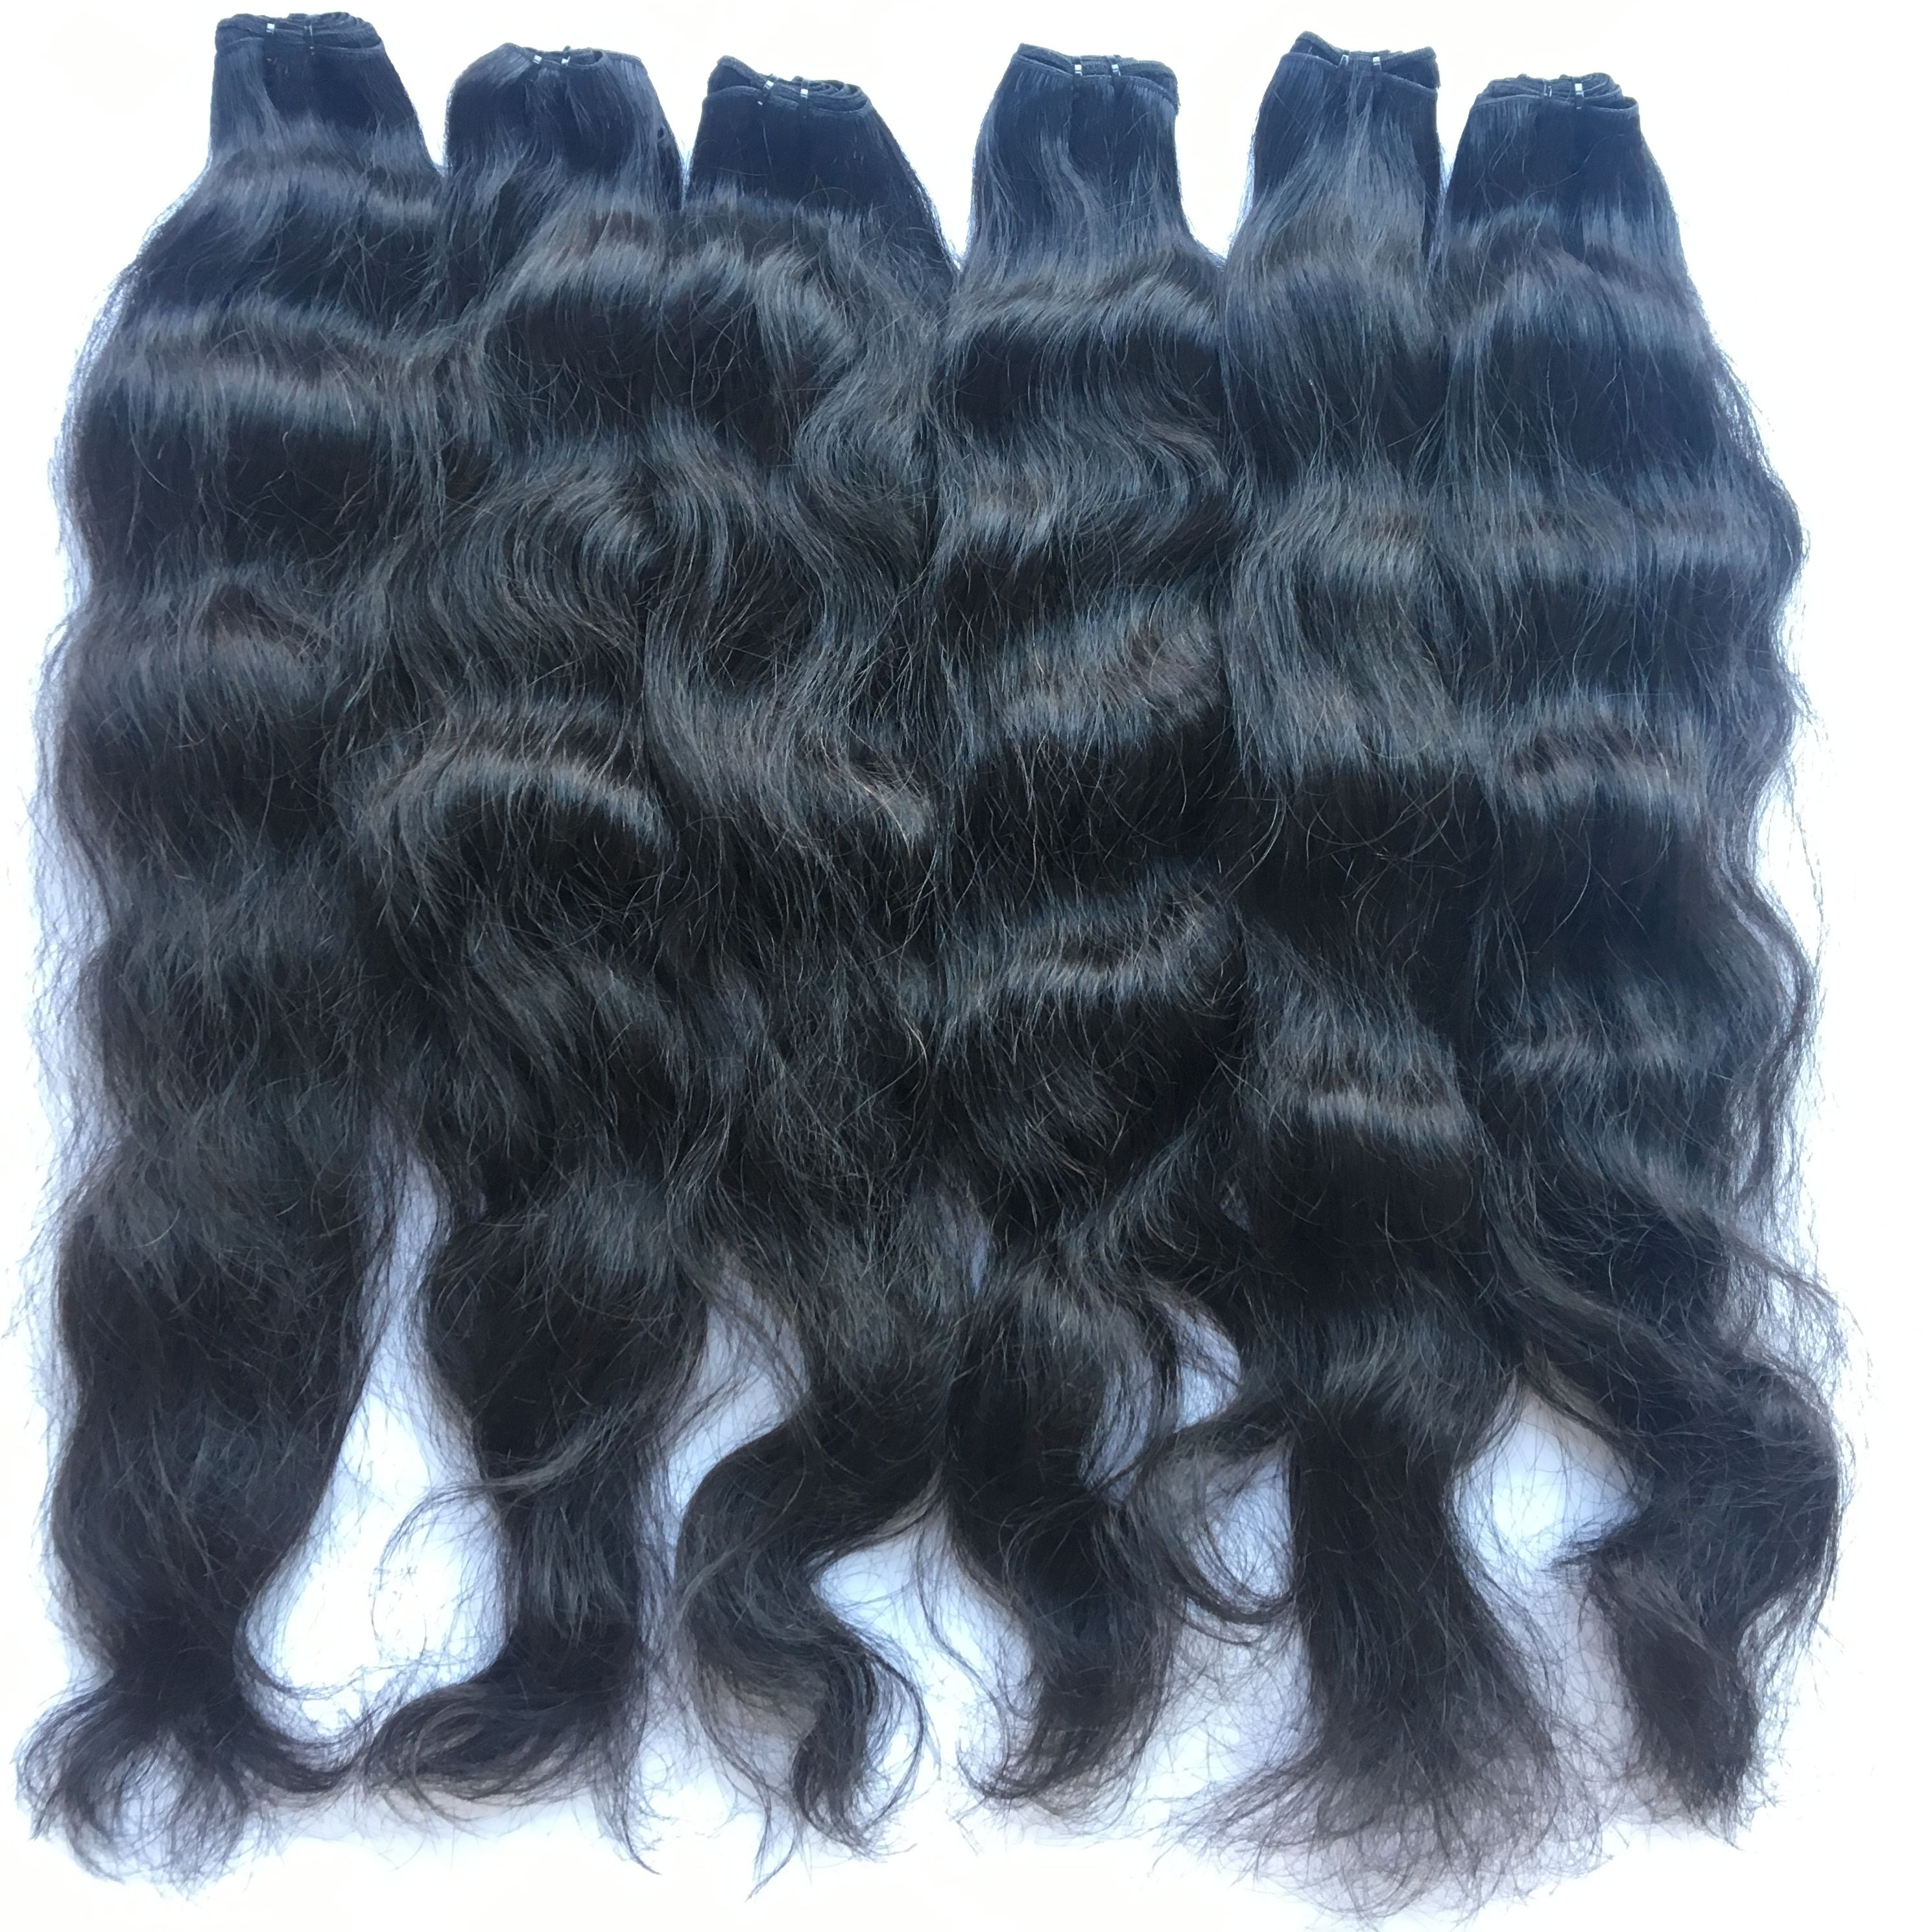 Raw Cambodian Hair 100% Human Hair With No Filler Synthetic Strands Virgin Hair